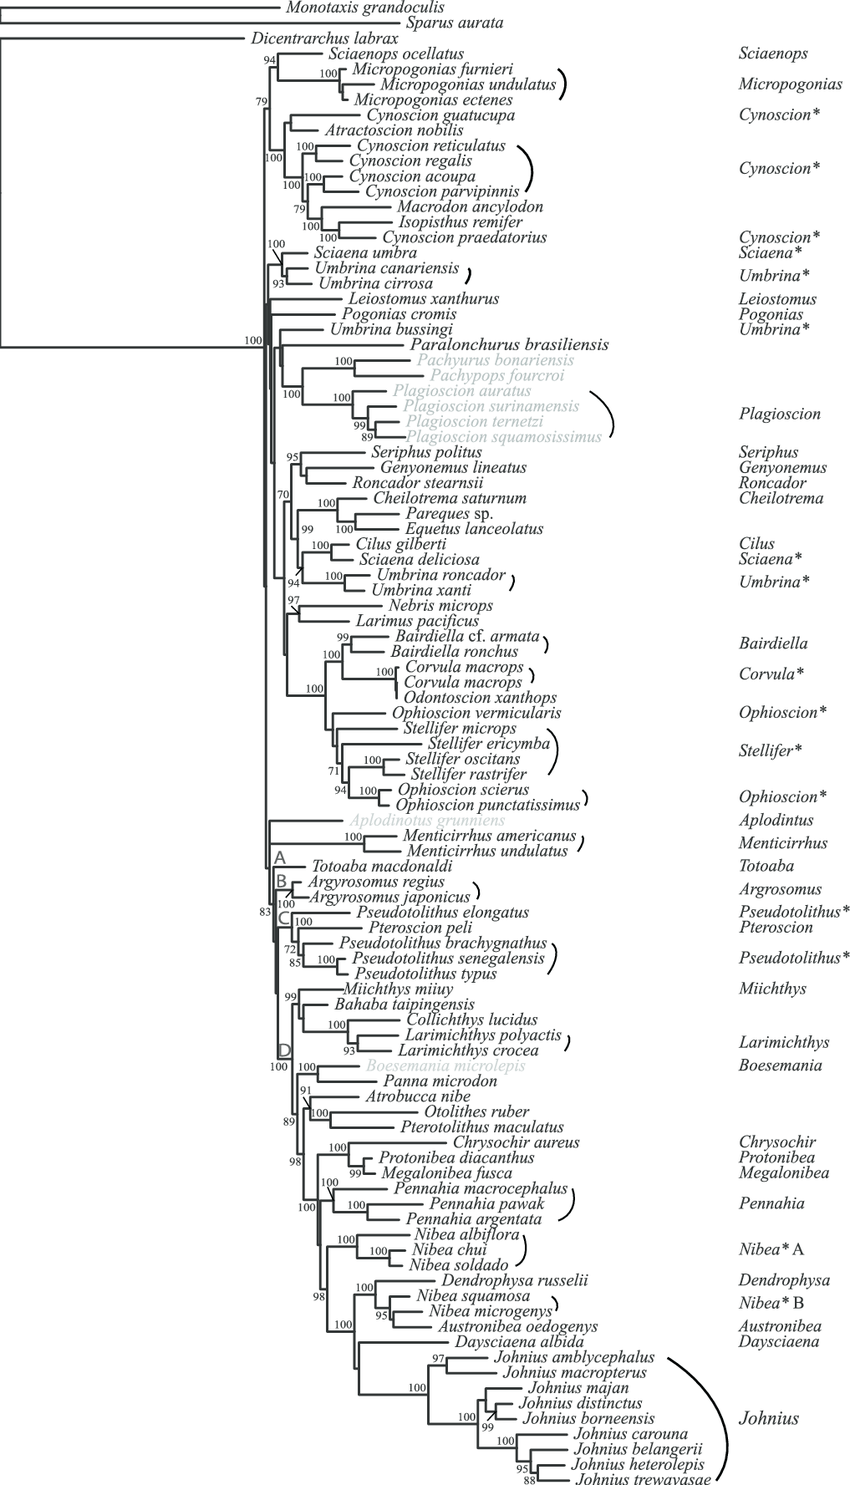 Phylogenetic tree of the Sciaenidae constructed with the